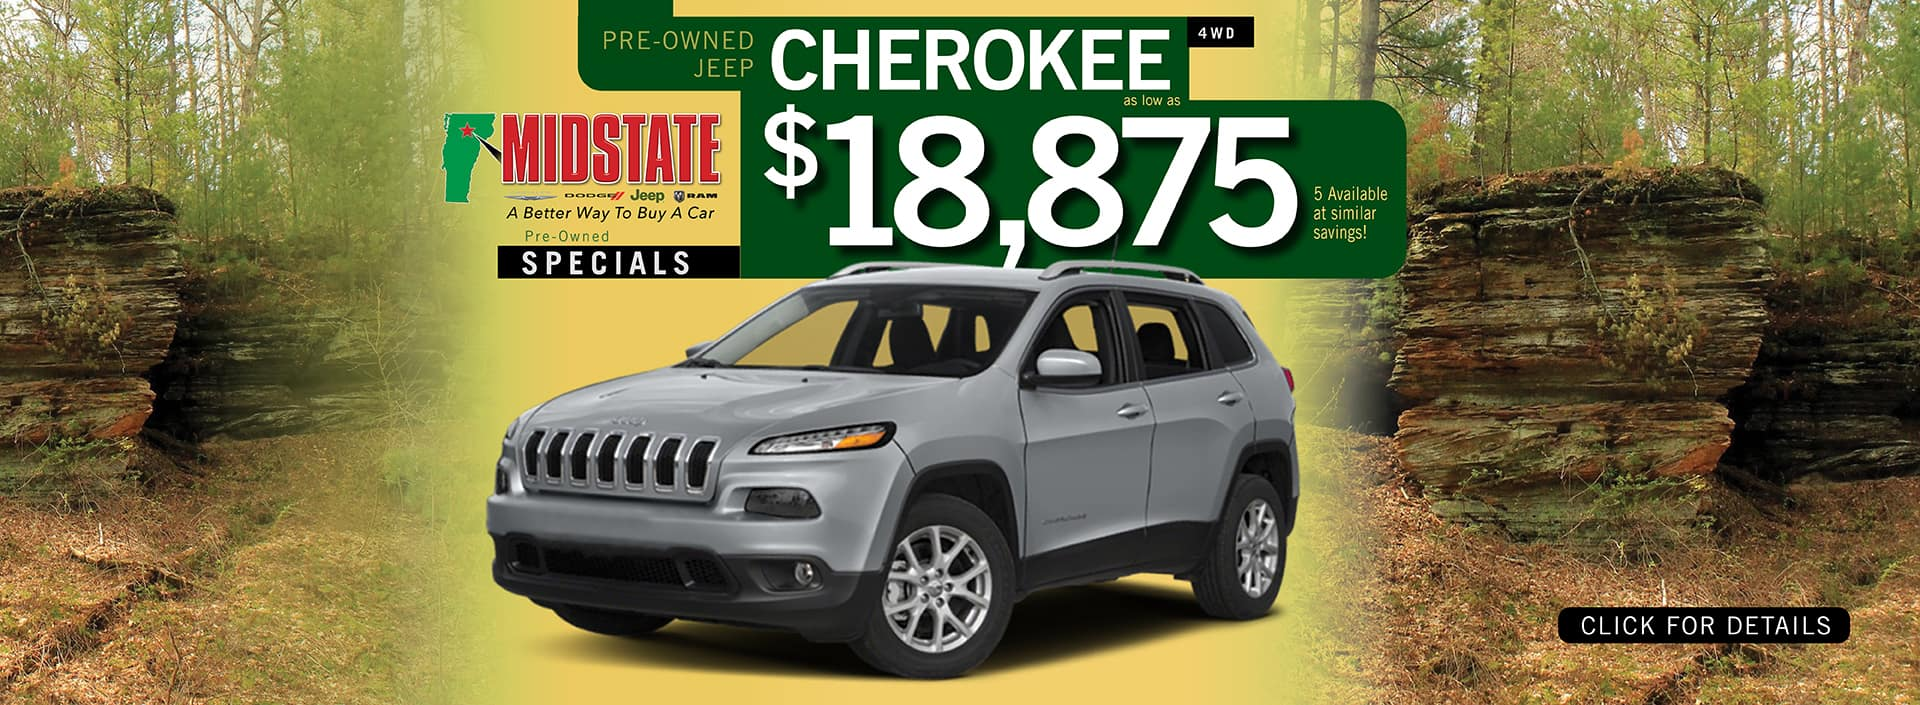 Used Jeep Cherokee Pre-Owned Offer | Barre, VT